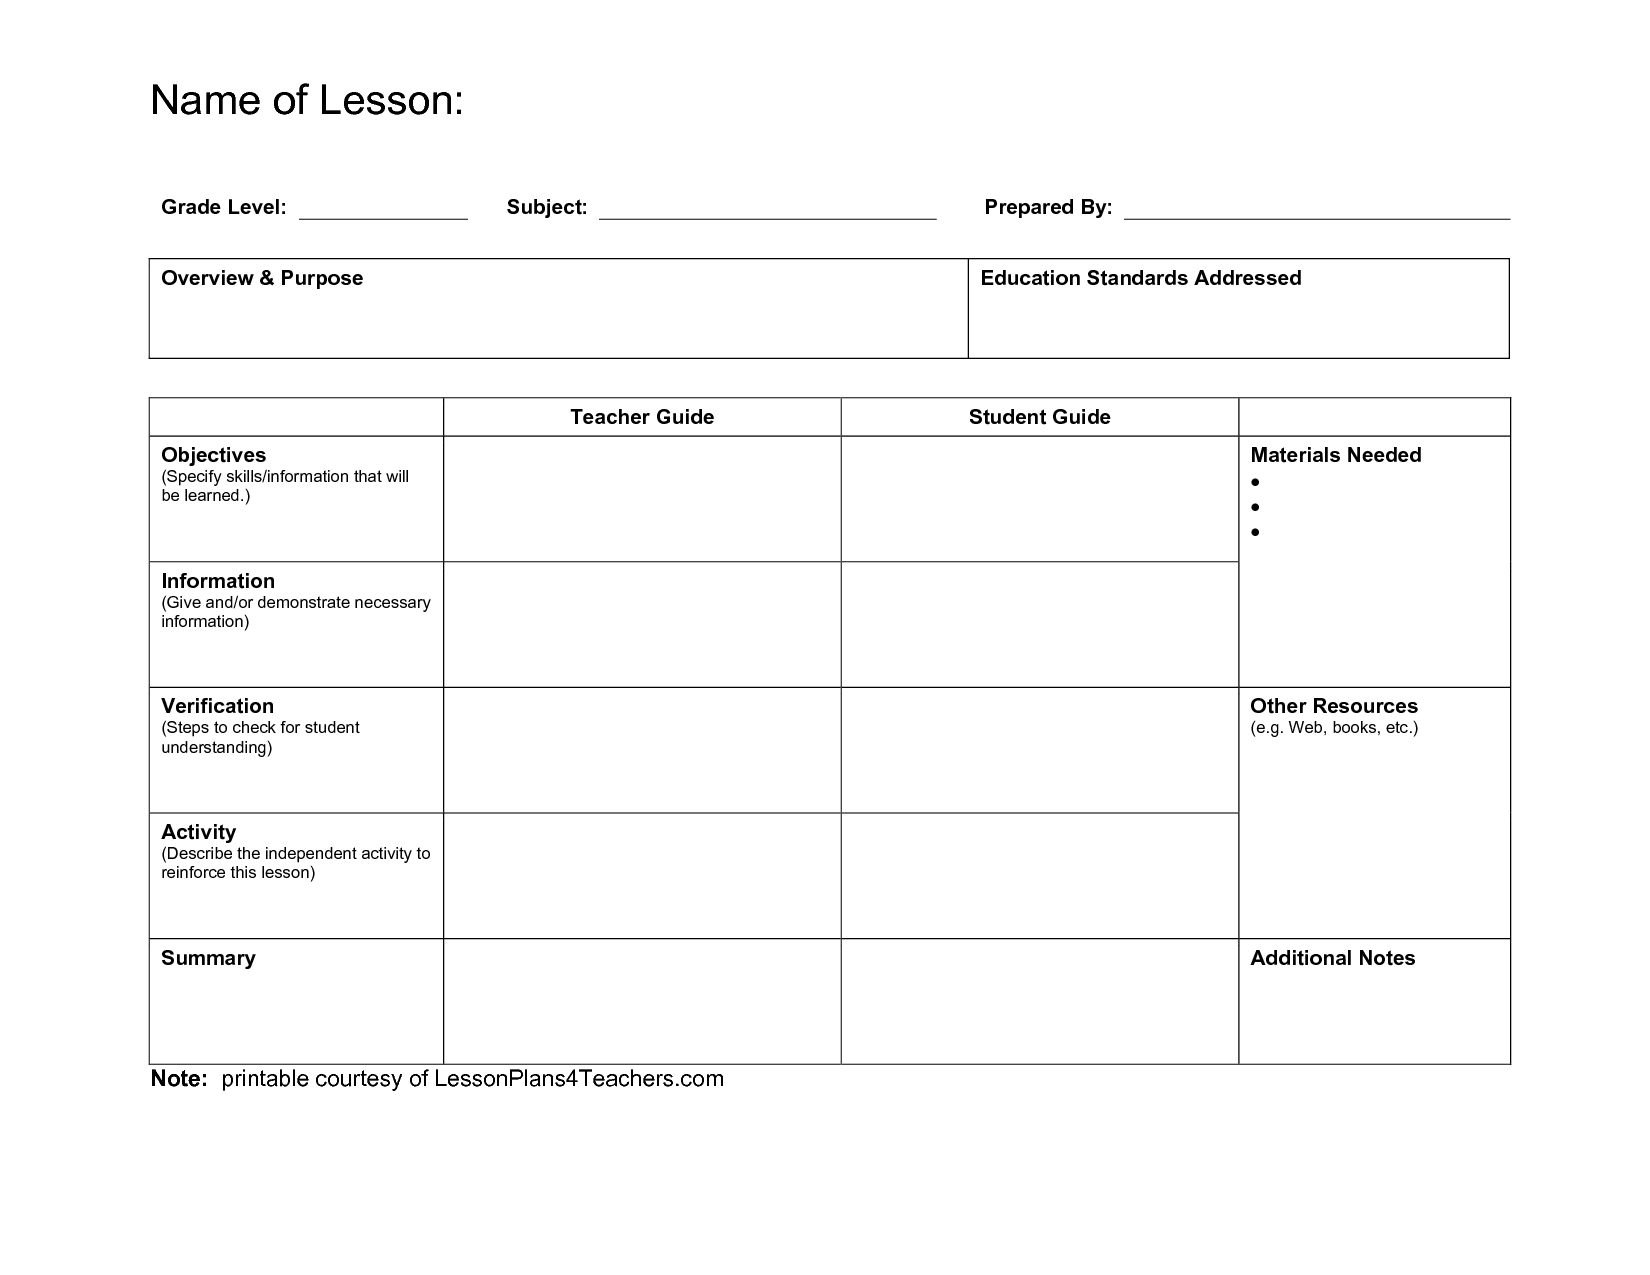 Daily Lesson Plan Template Fotolipcom Rich Image And Wallpaper - Blank daily lesson plan template